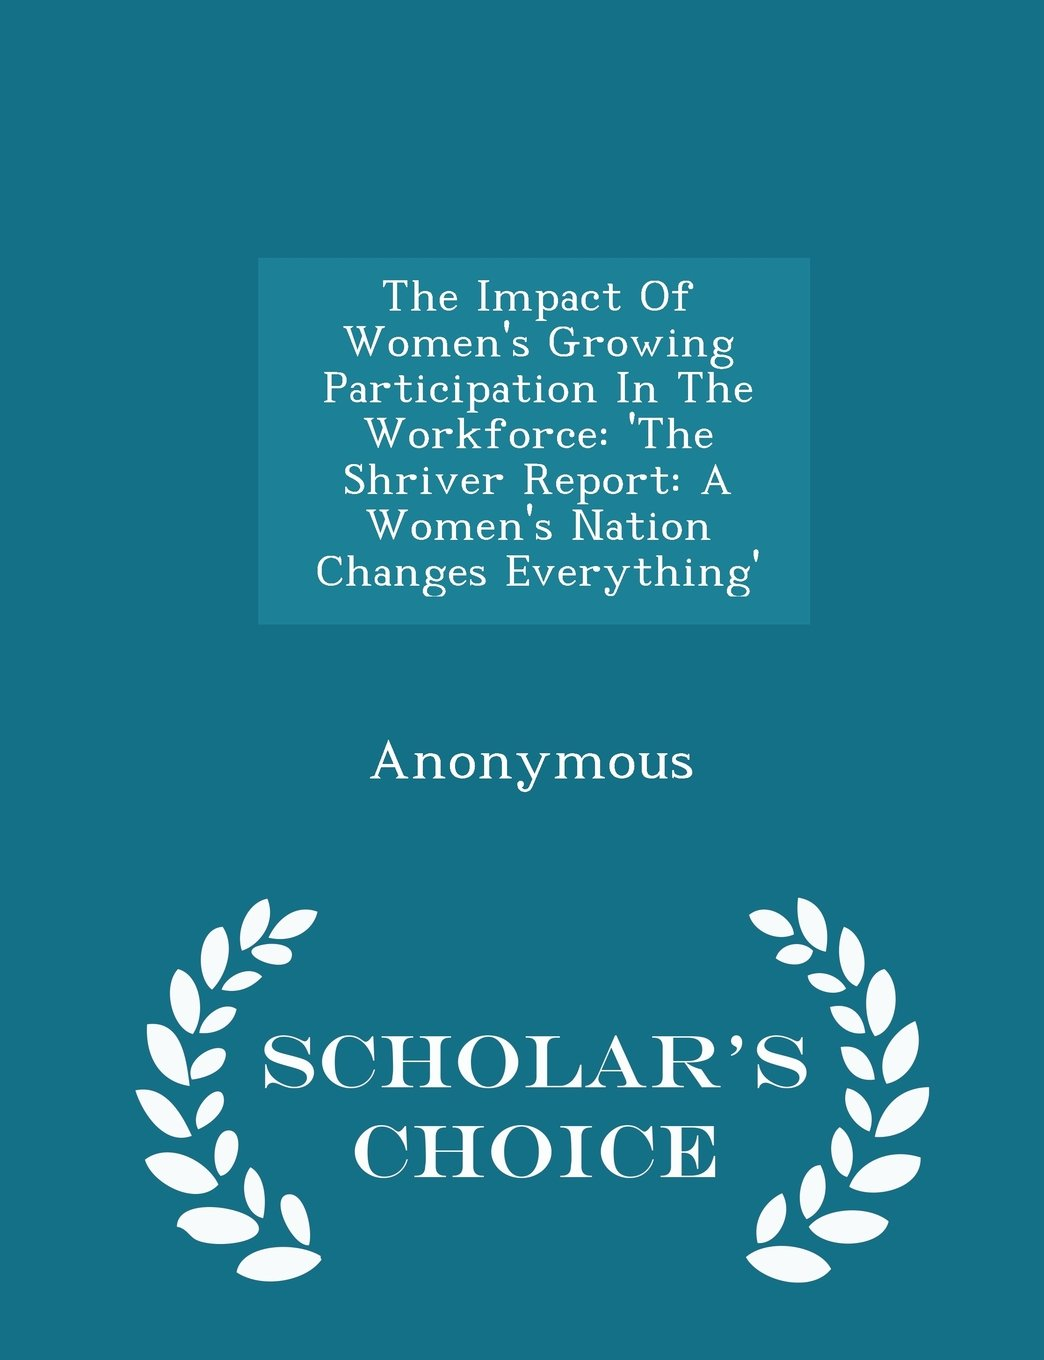 Read Online The Impact Of Women's Growing Participation In The Workforce: 'The Shriver Report: A Women's Nation Changes Everything' - Scholar's Choice Edition pdf